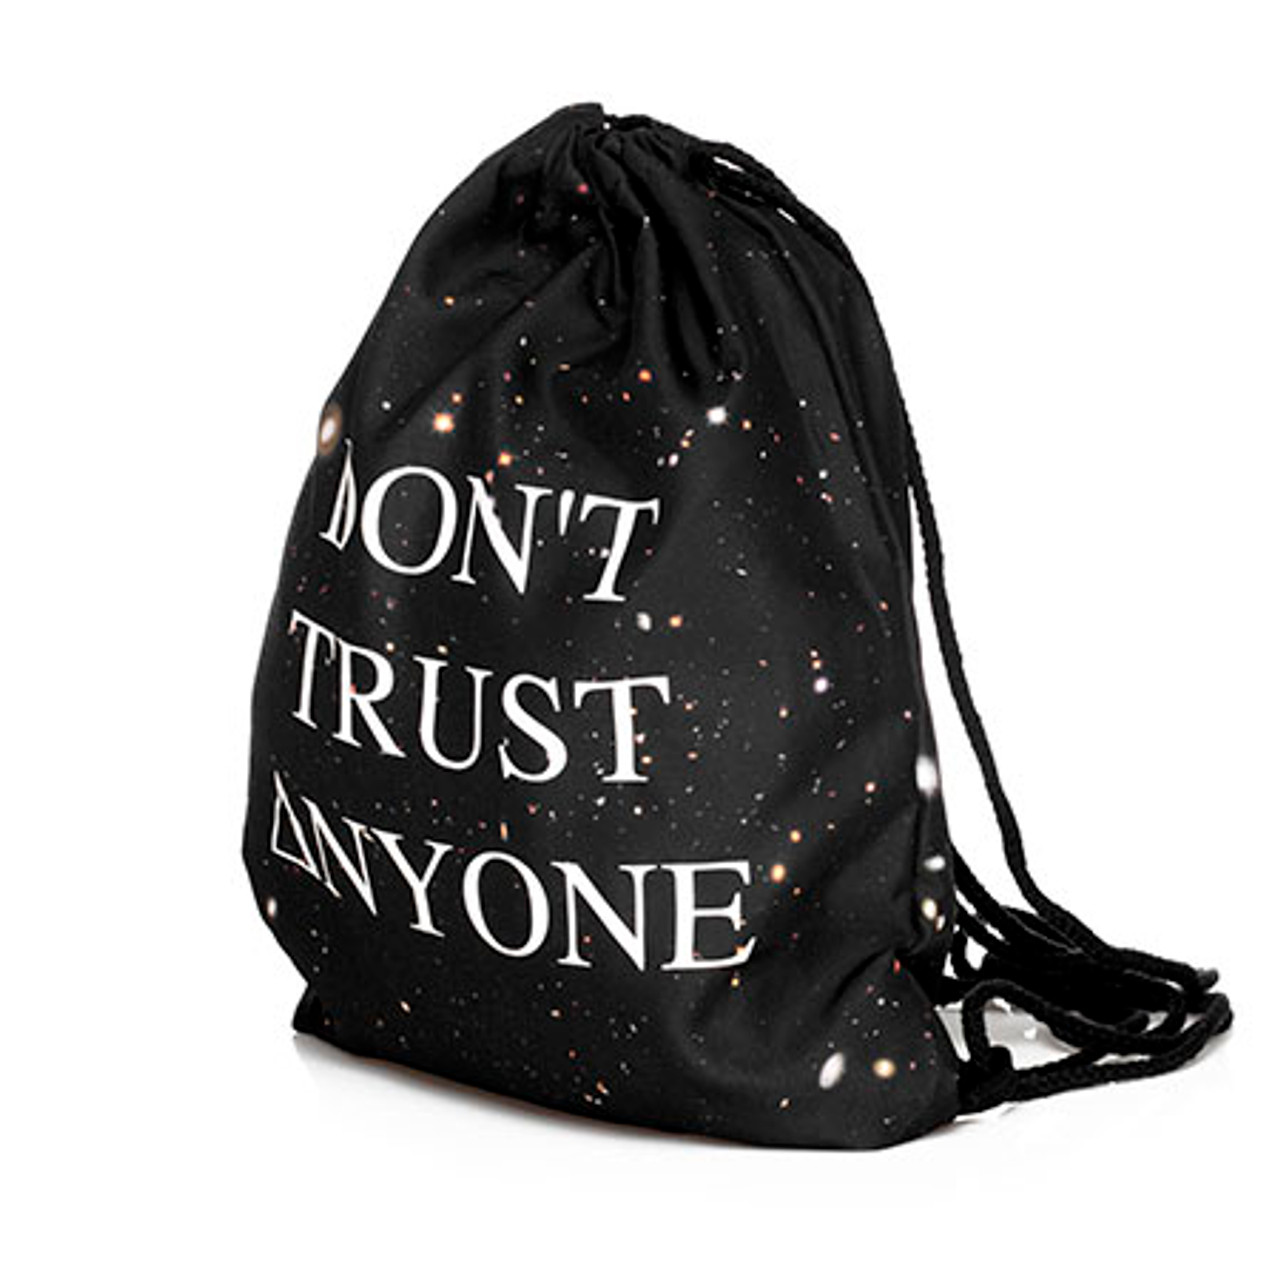 Don't Trust Anyone Graphic Print Drawstring Sack Backpack - 28 Styles